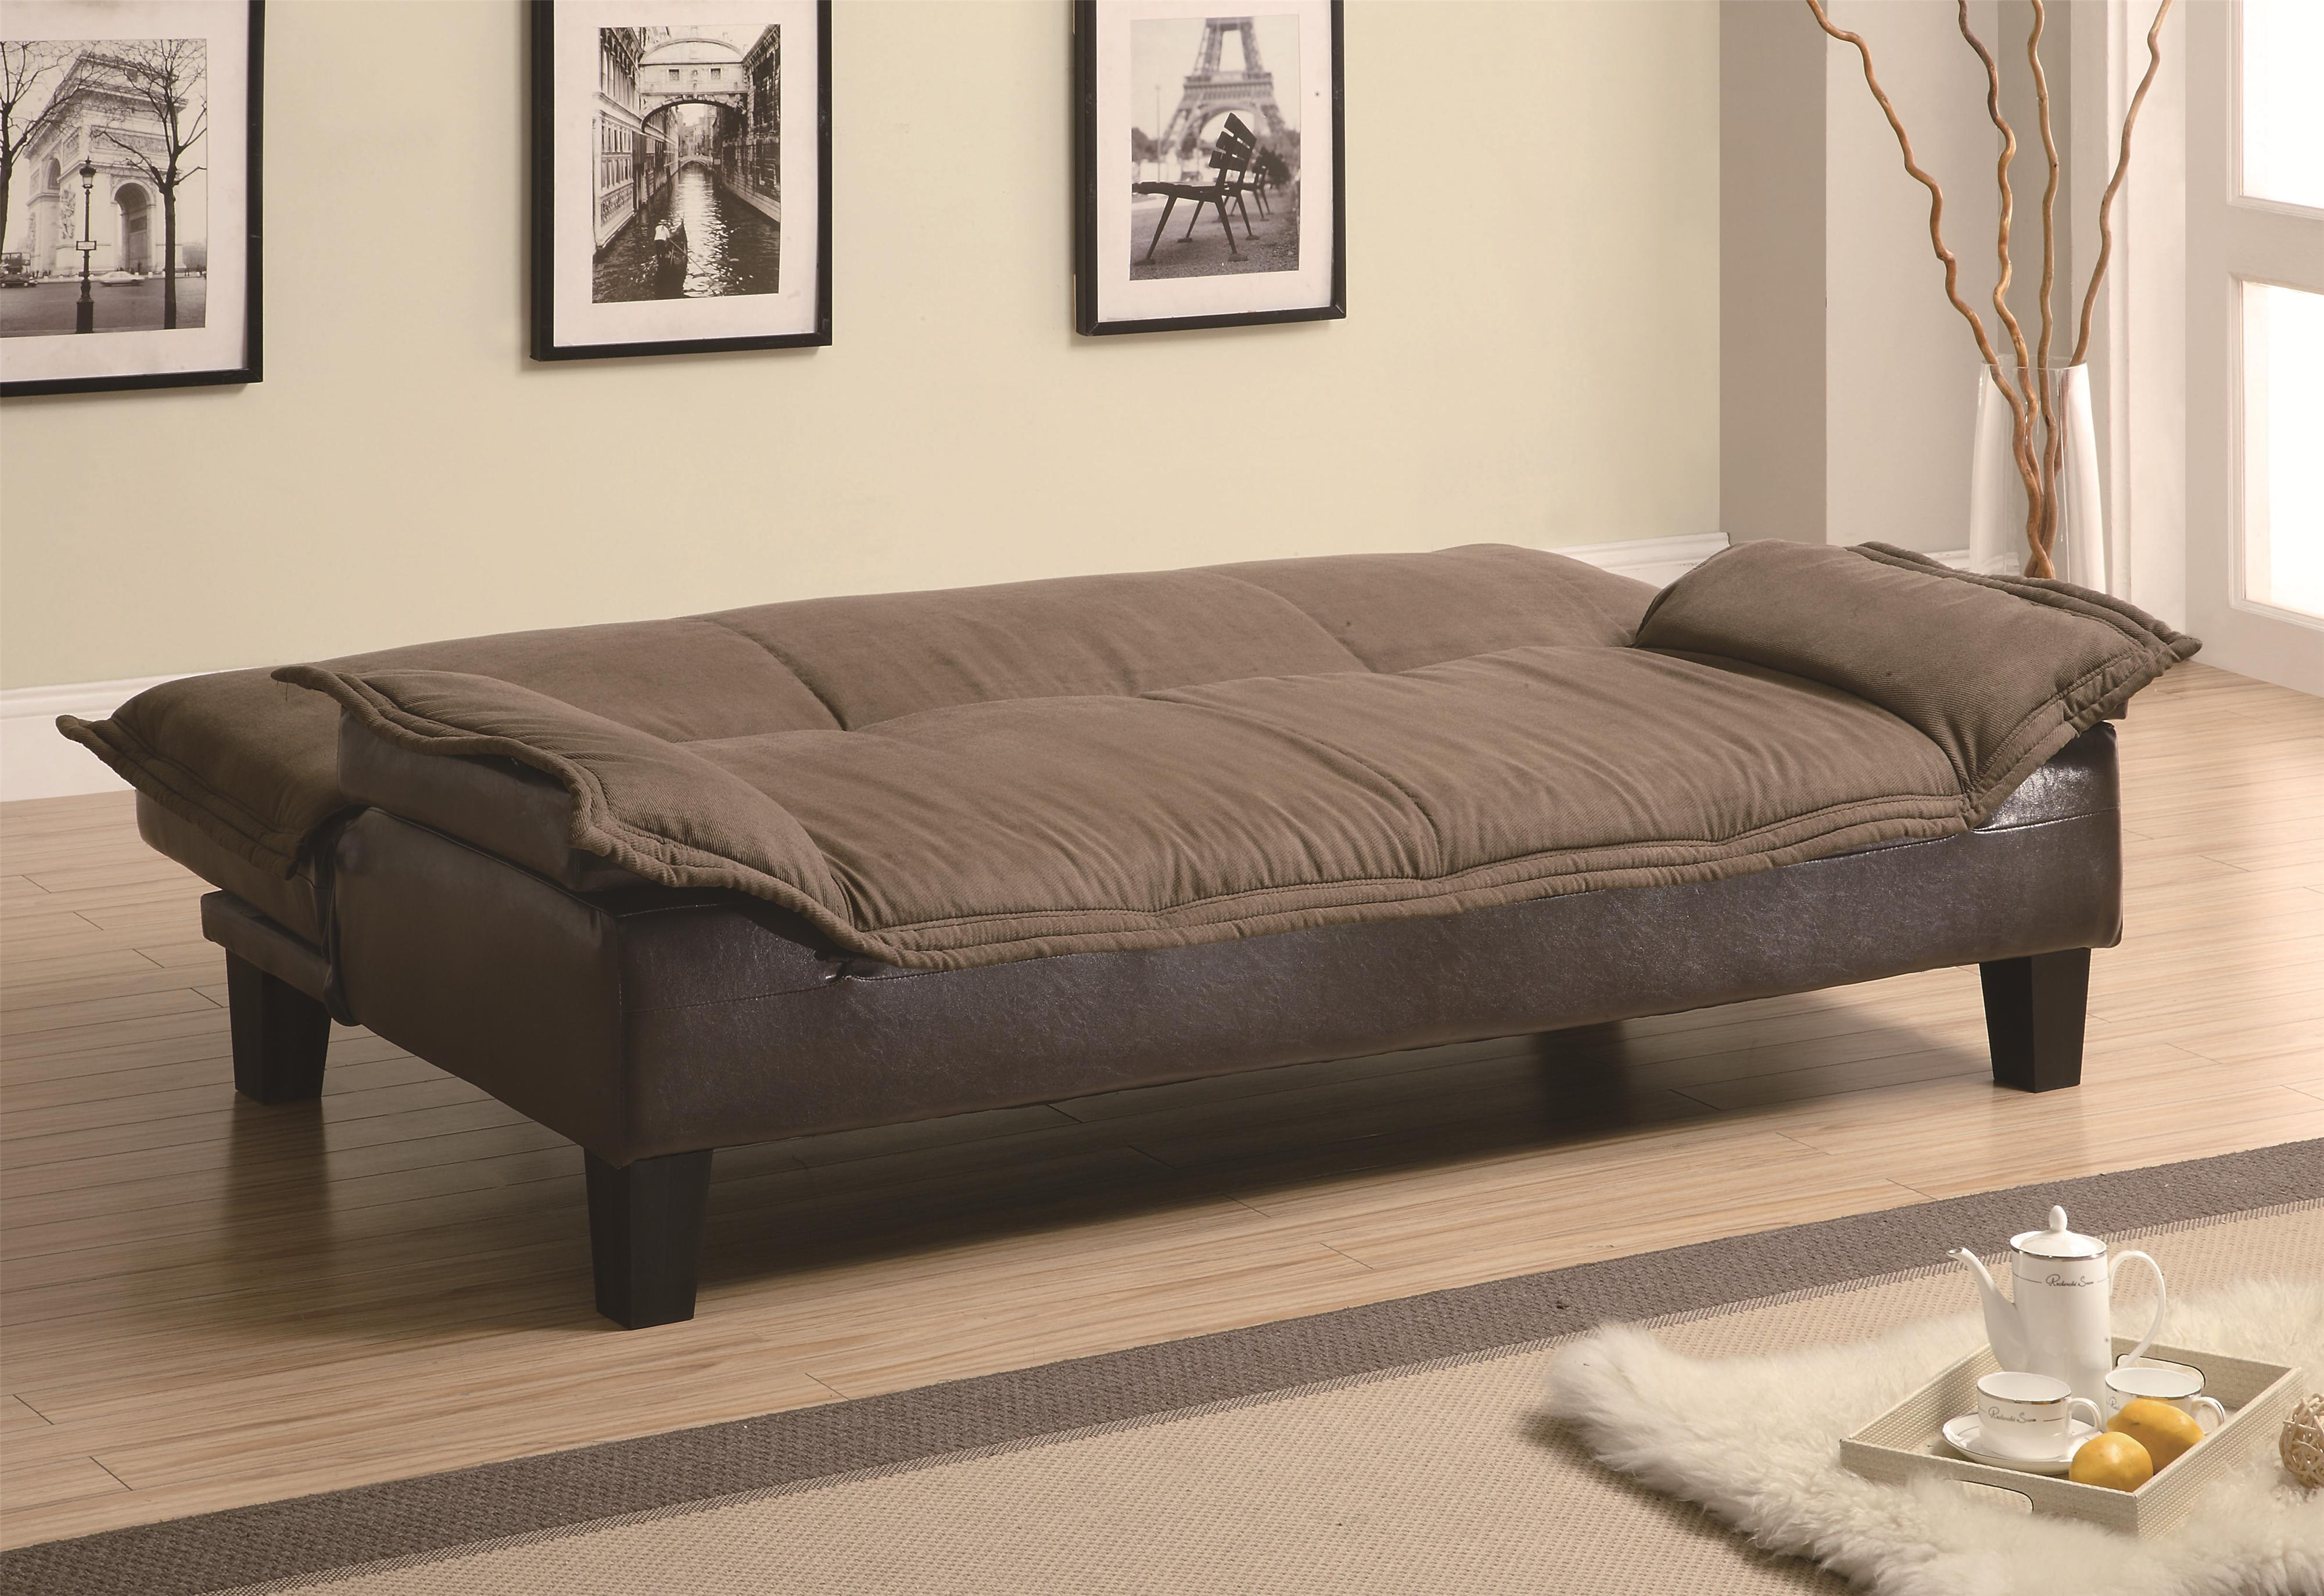 coaster sofa beds and futons sofa bed   item number  300301 coaster sofa beds and futons ratchet back sofa bed with dark brown      rh   valuecitynj